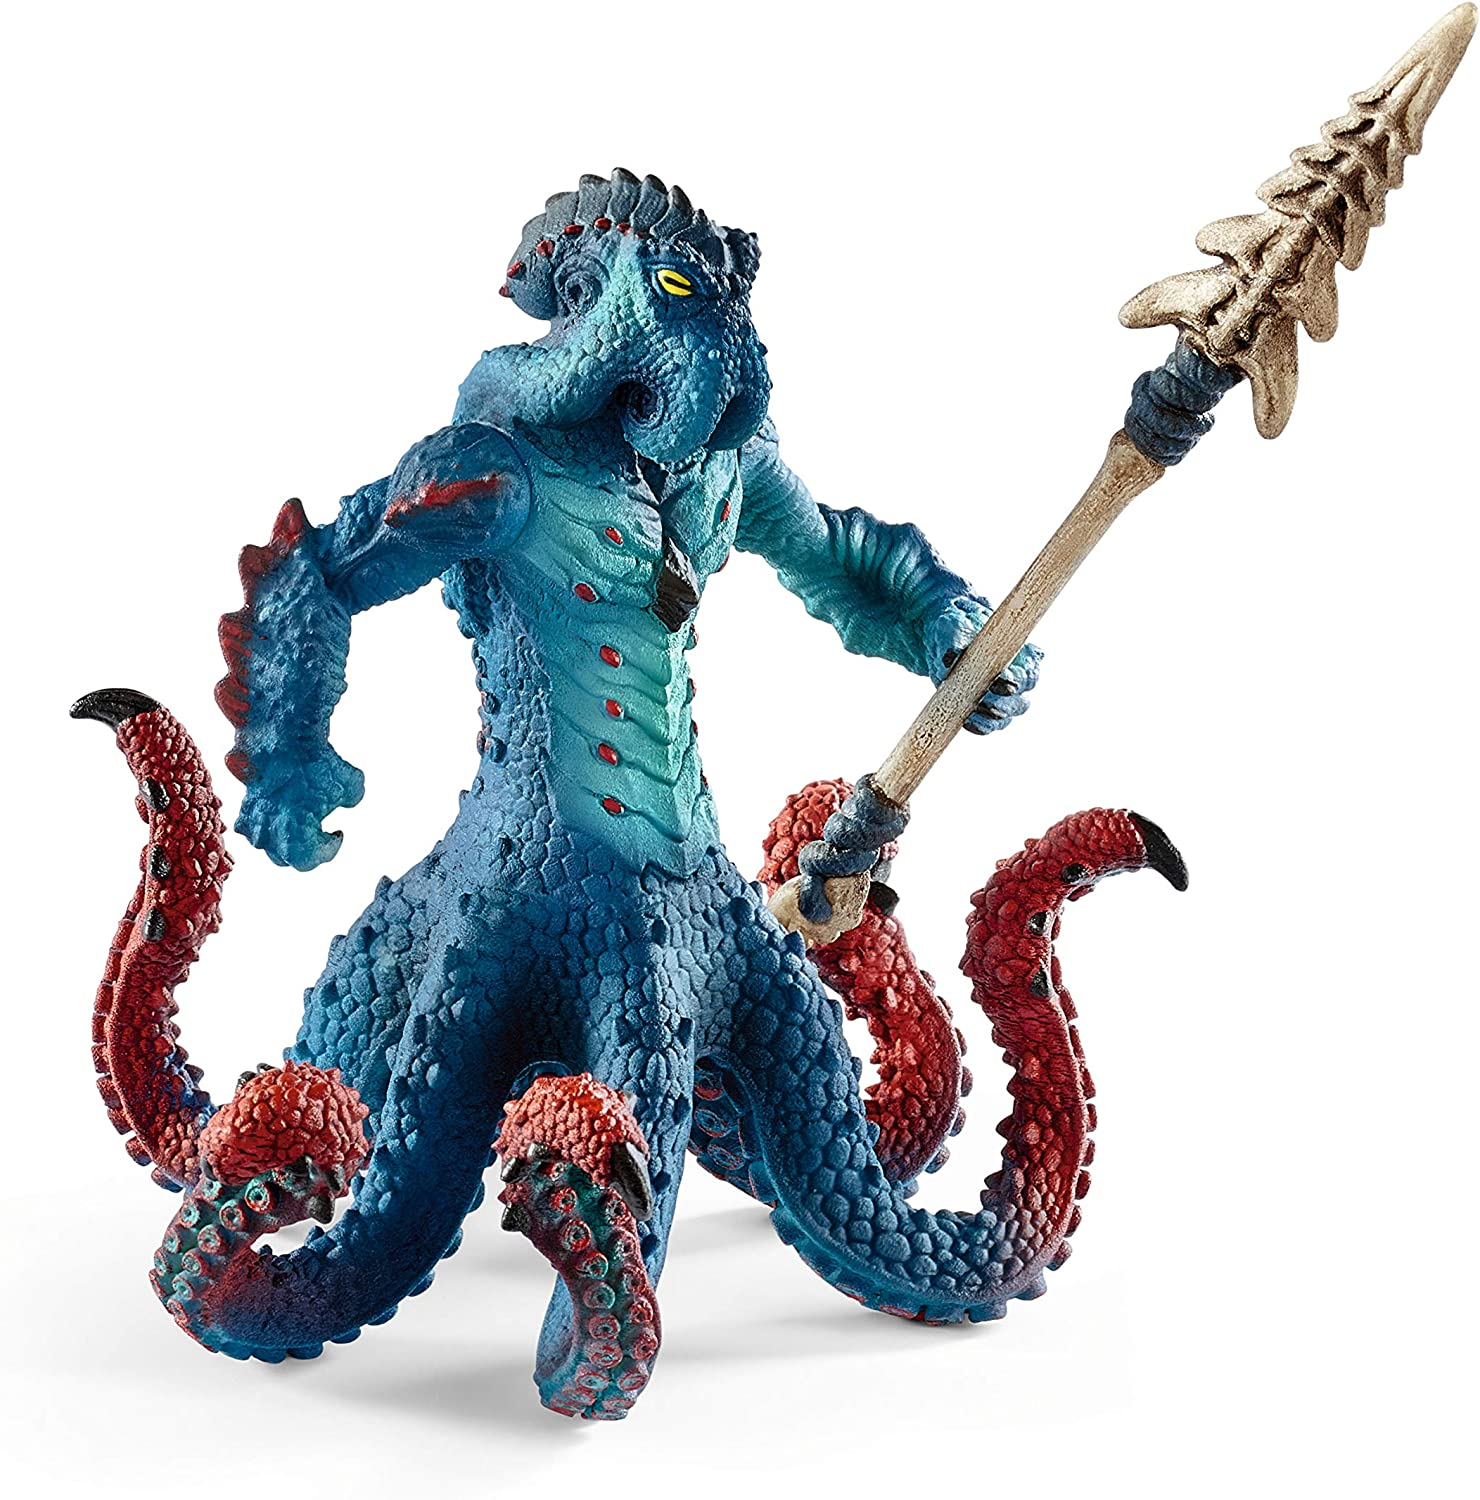 SCHLEICH Eldrador Monster Octopus with Weapon Imaginative Figurine for Kids Ages 7-12